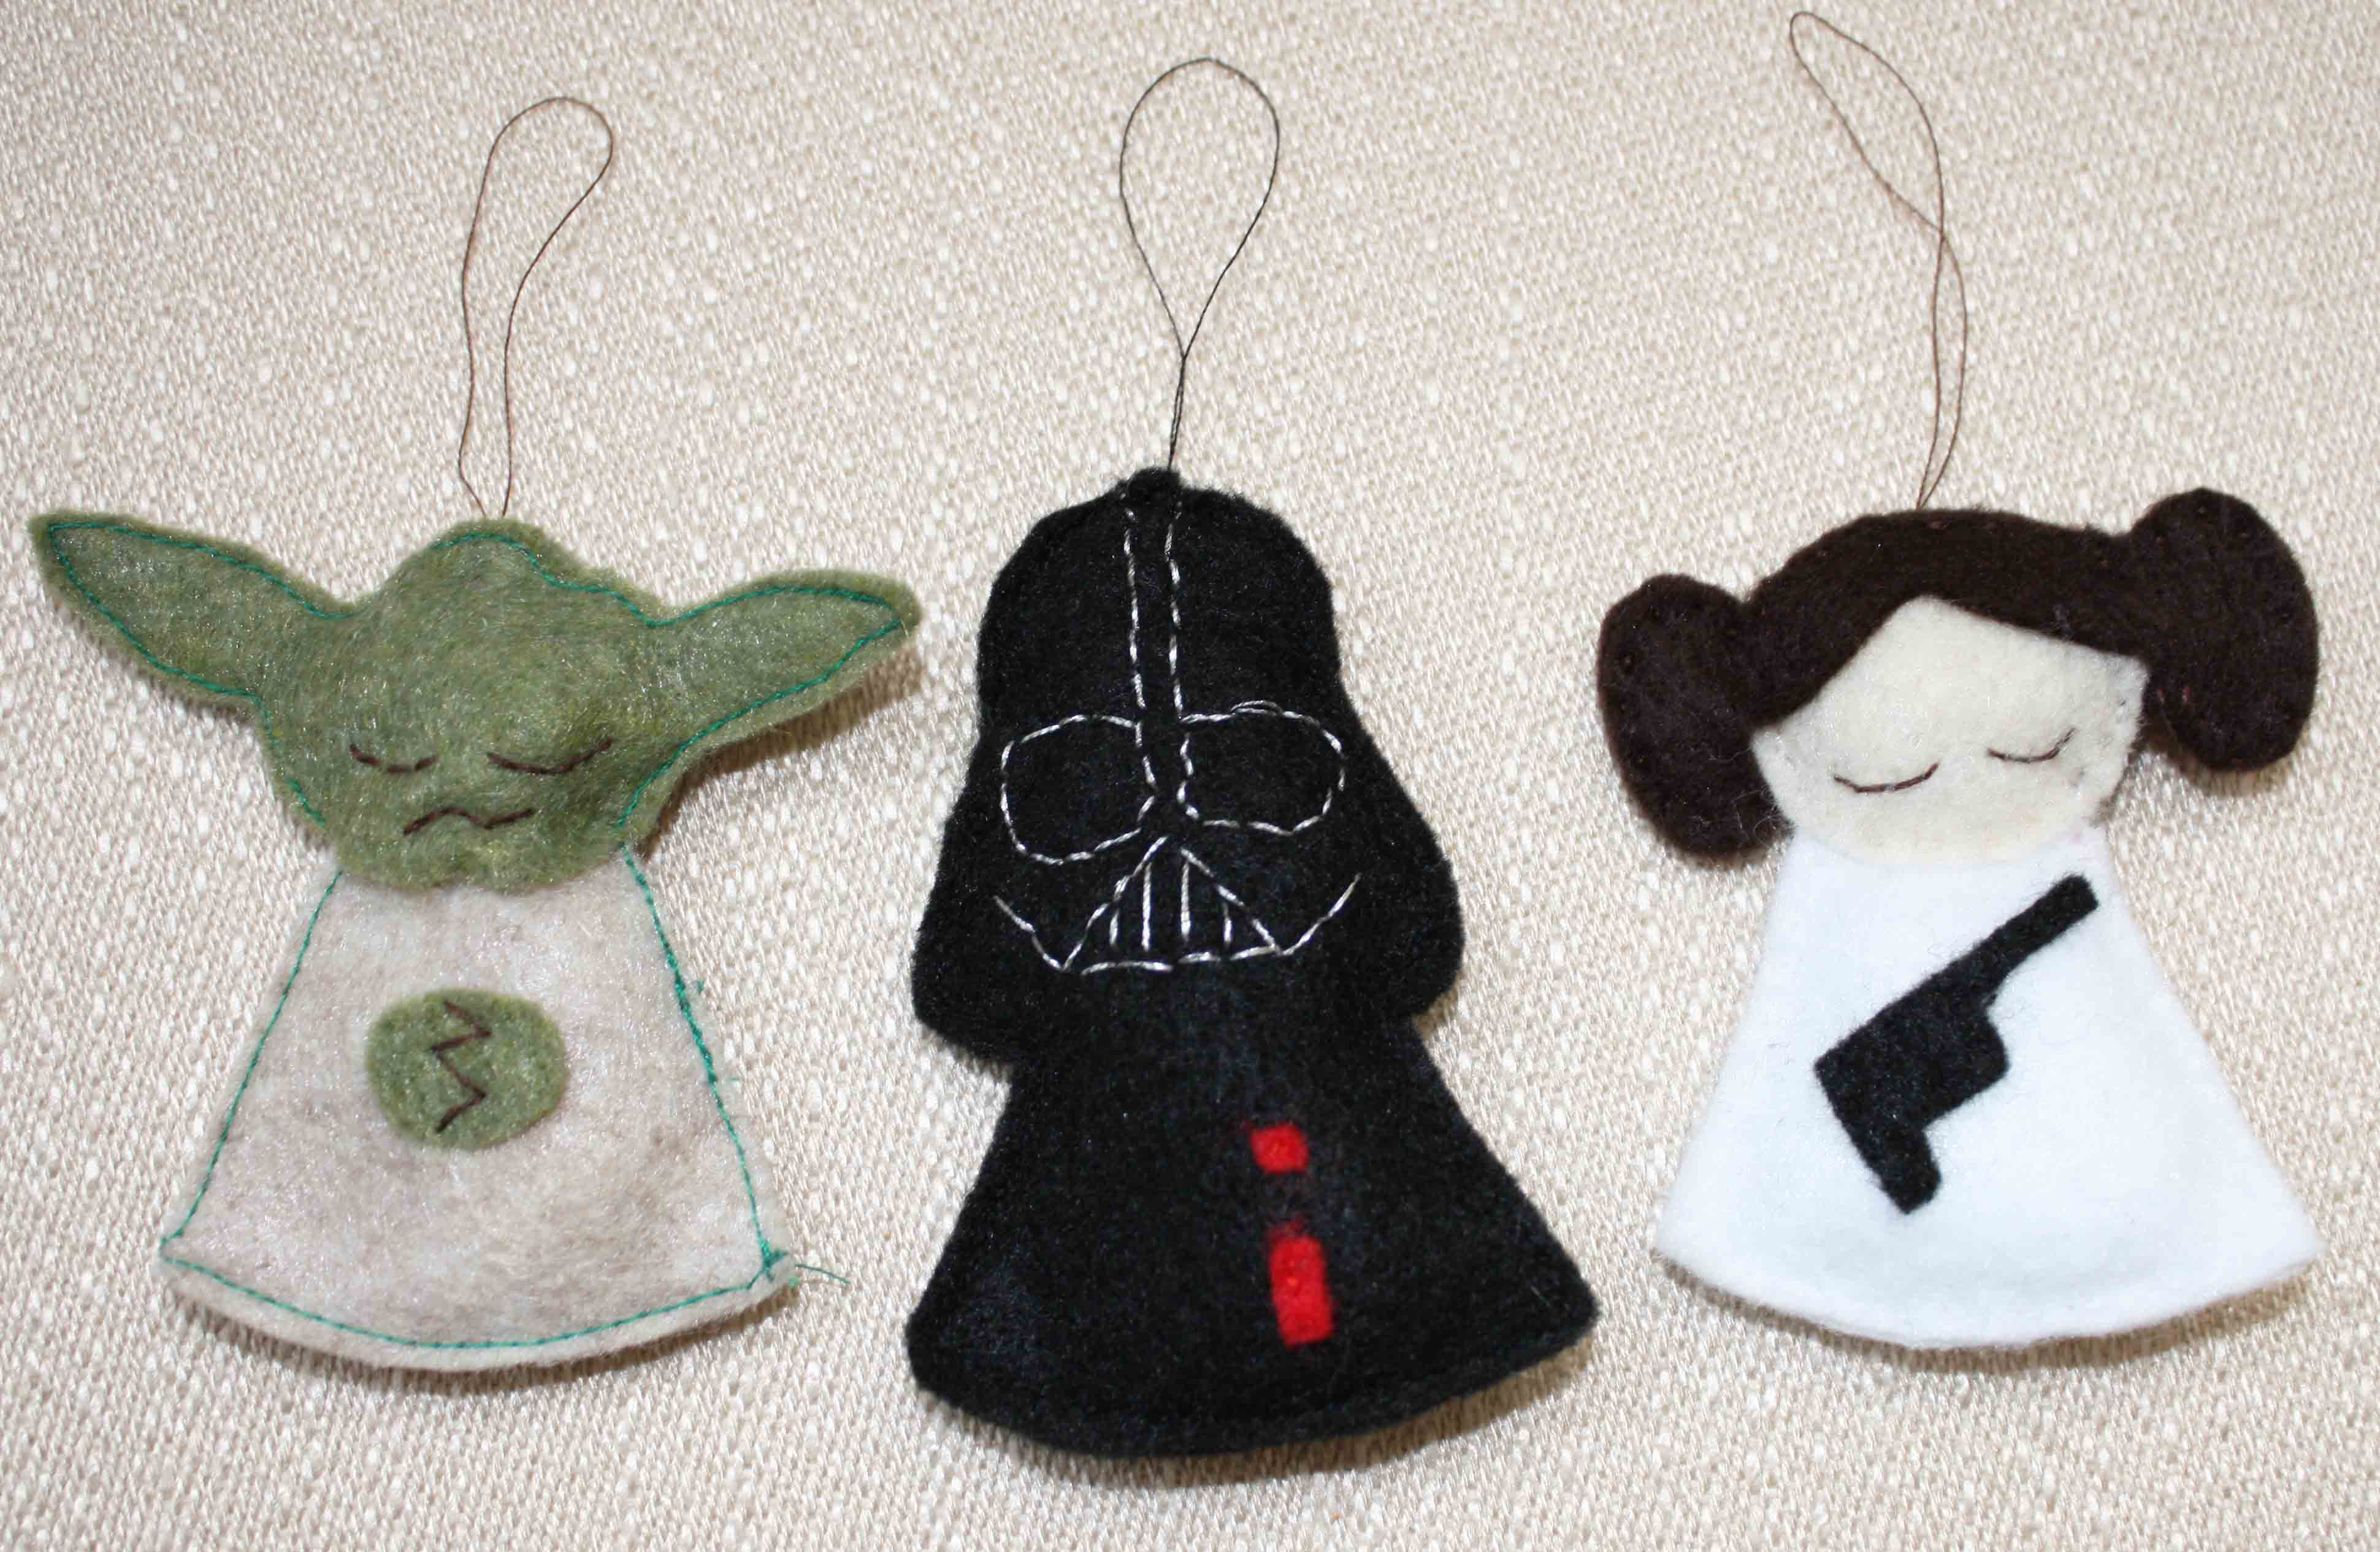 Felt Craft Ideas For Christmas Part - 31: Star Wars Felt Ornaments 2